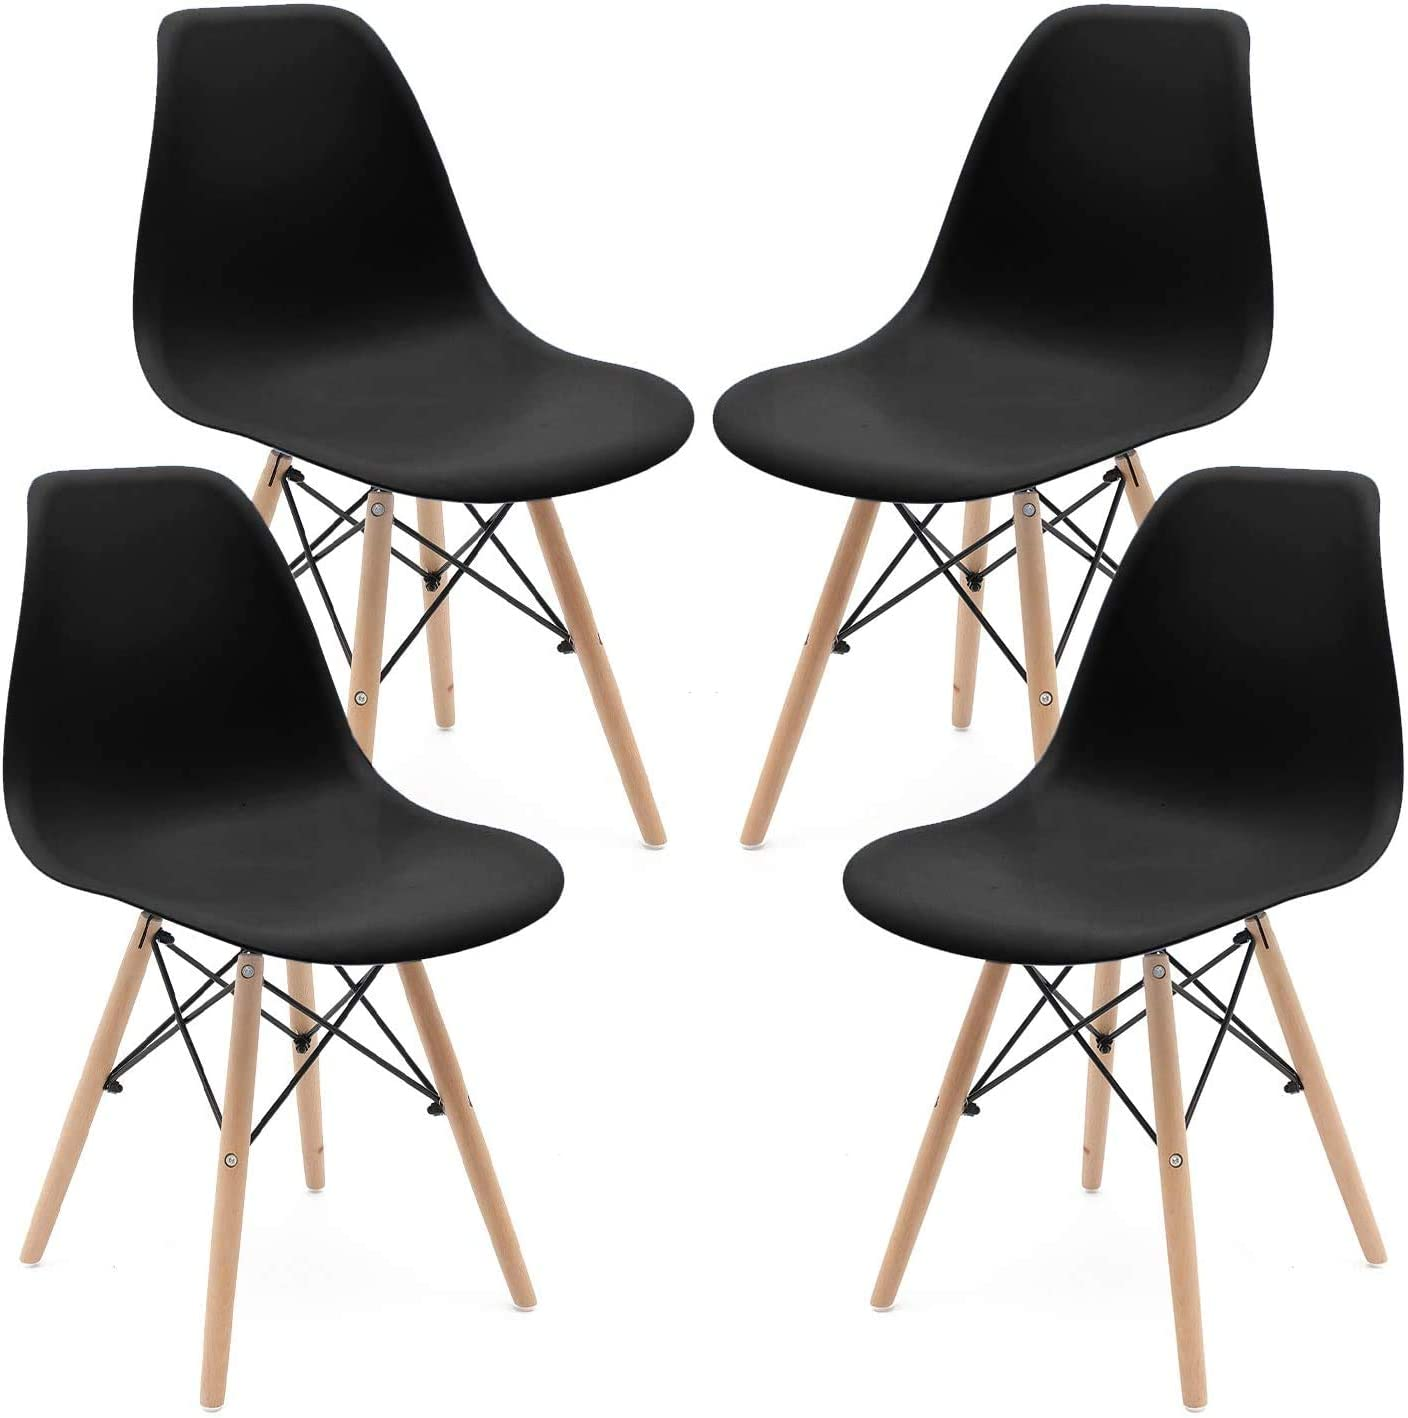 Set of 4 Plastic Dining Chair